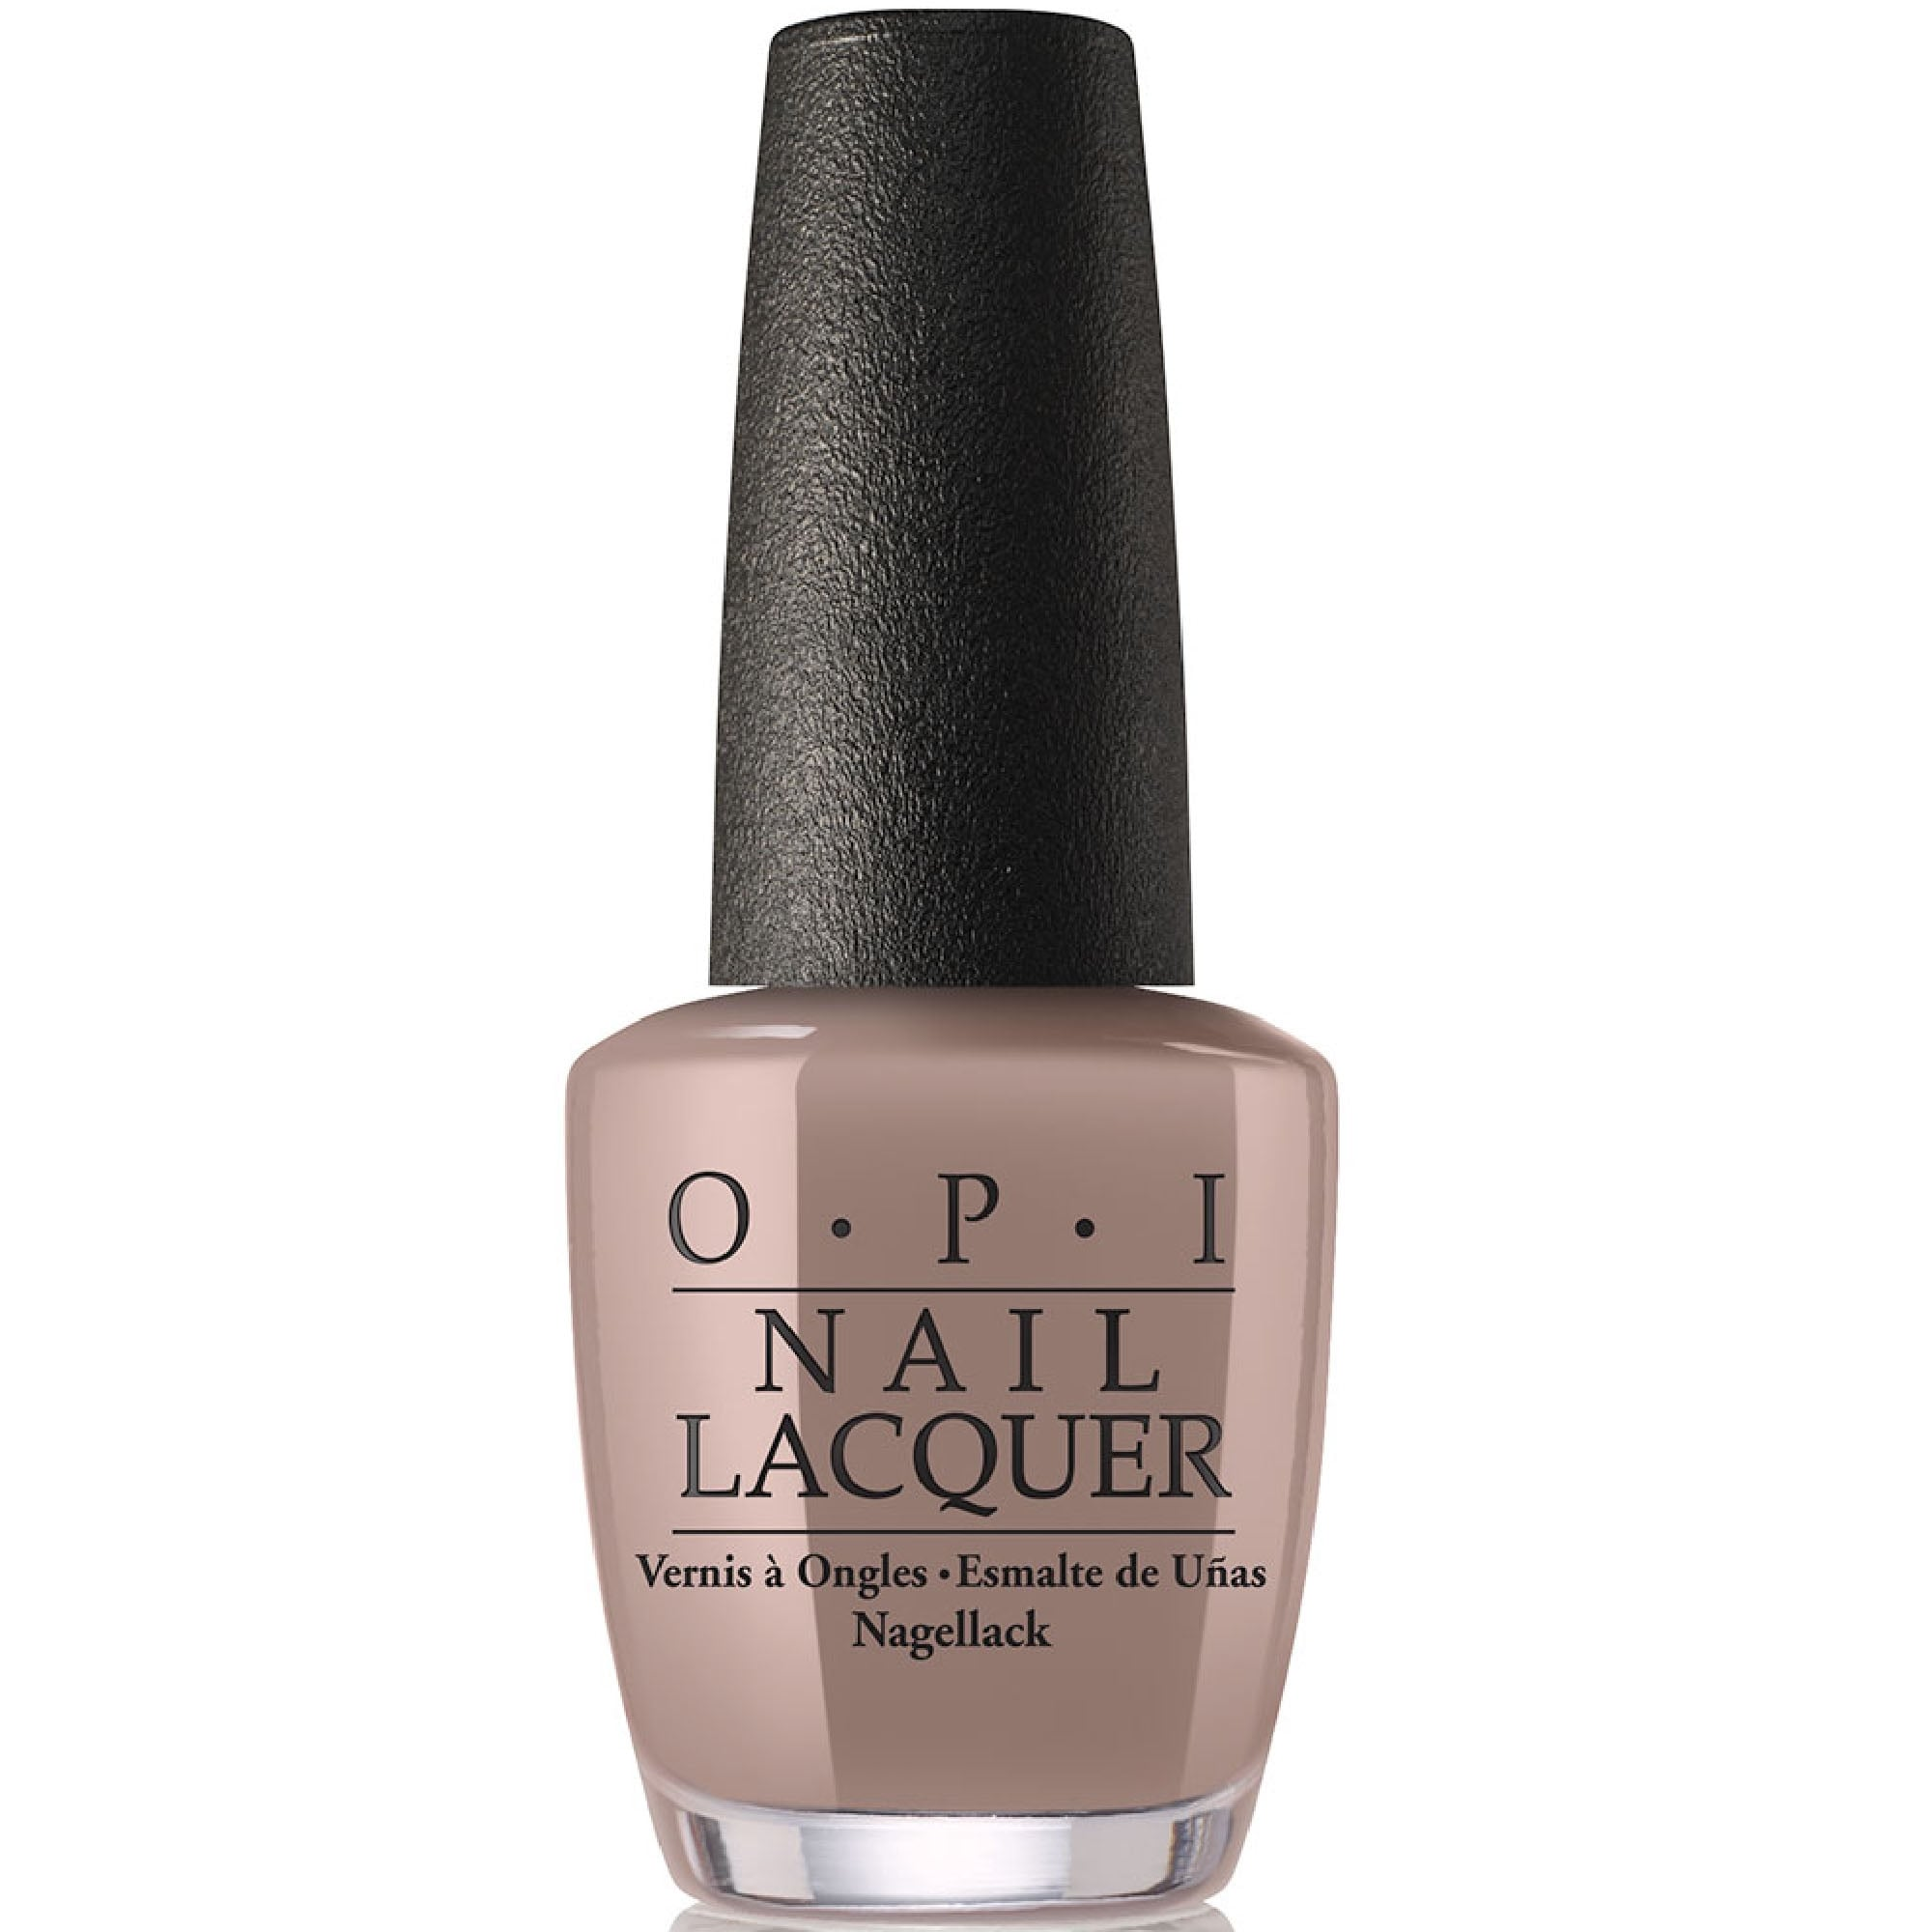 Icelanded a Bottle of OPI-OPI Nail Lacquer-UK-Wholesaler-Supplier-queenofnailscouk